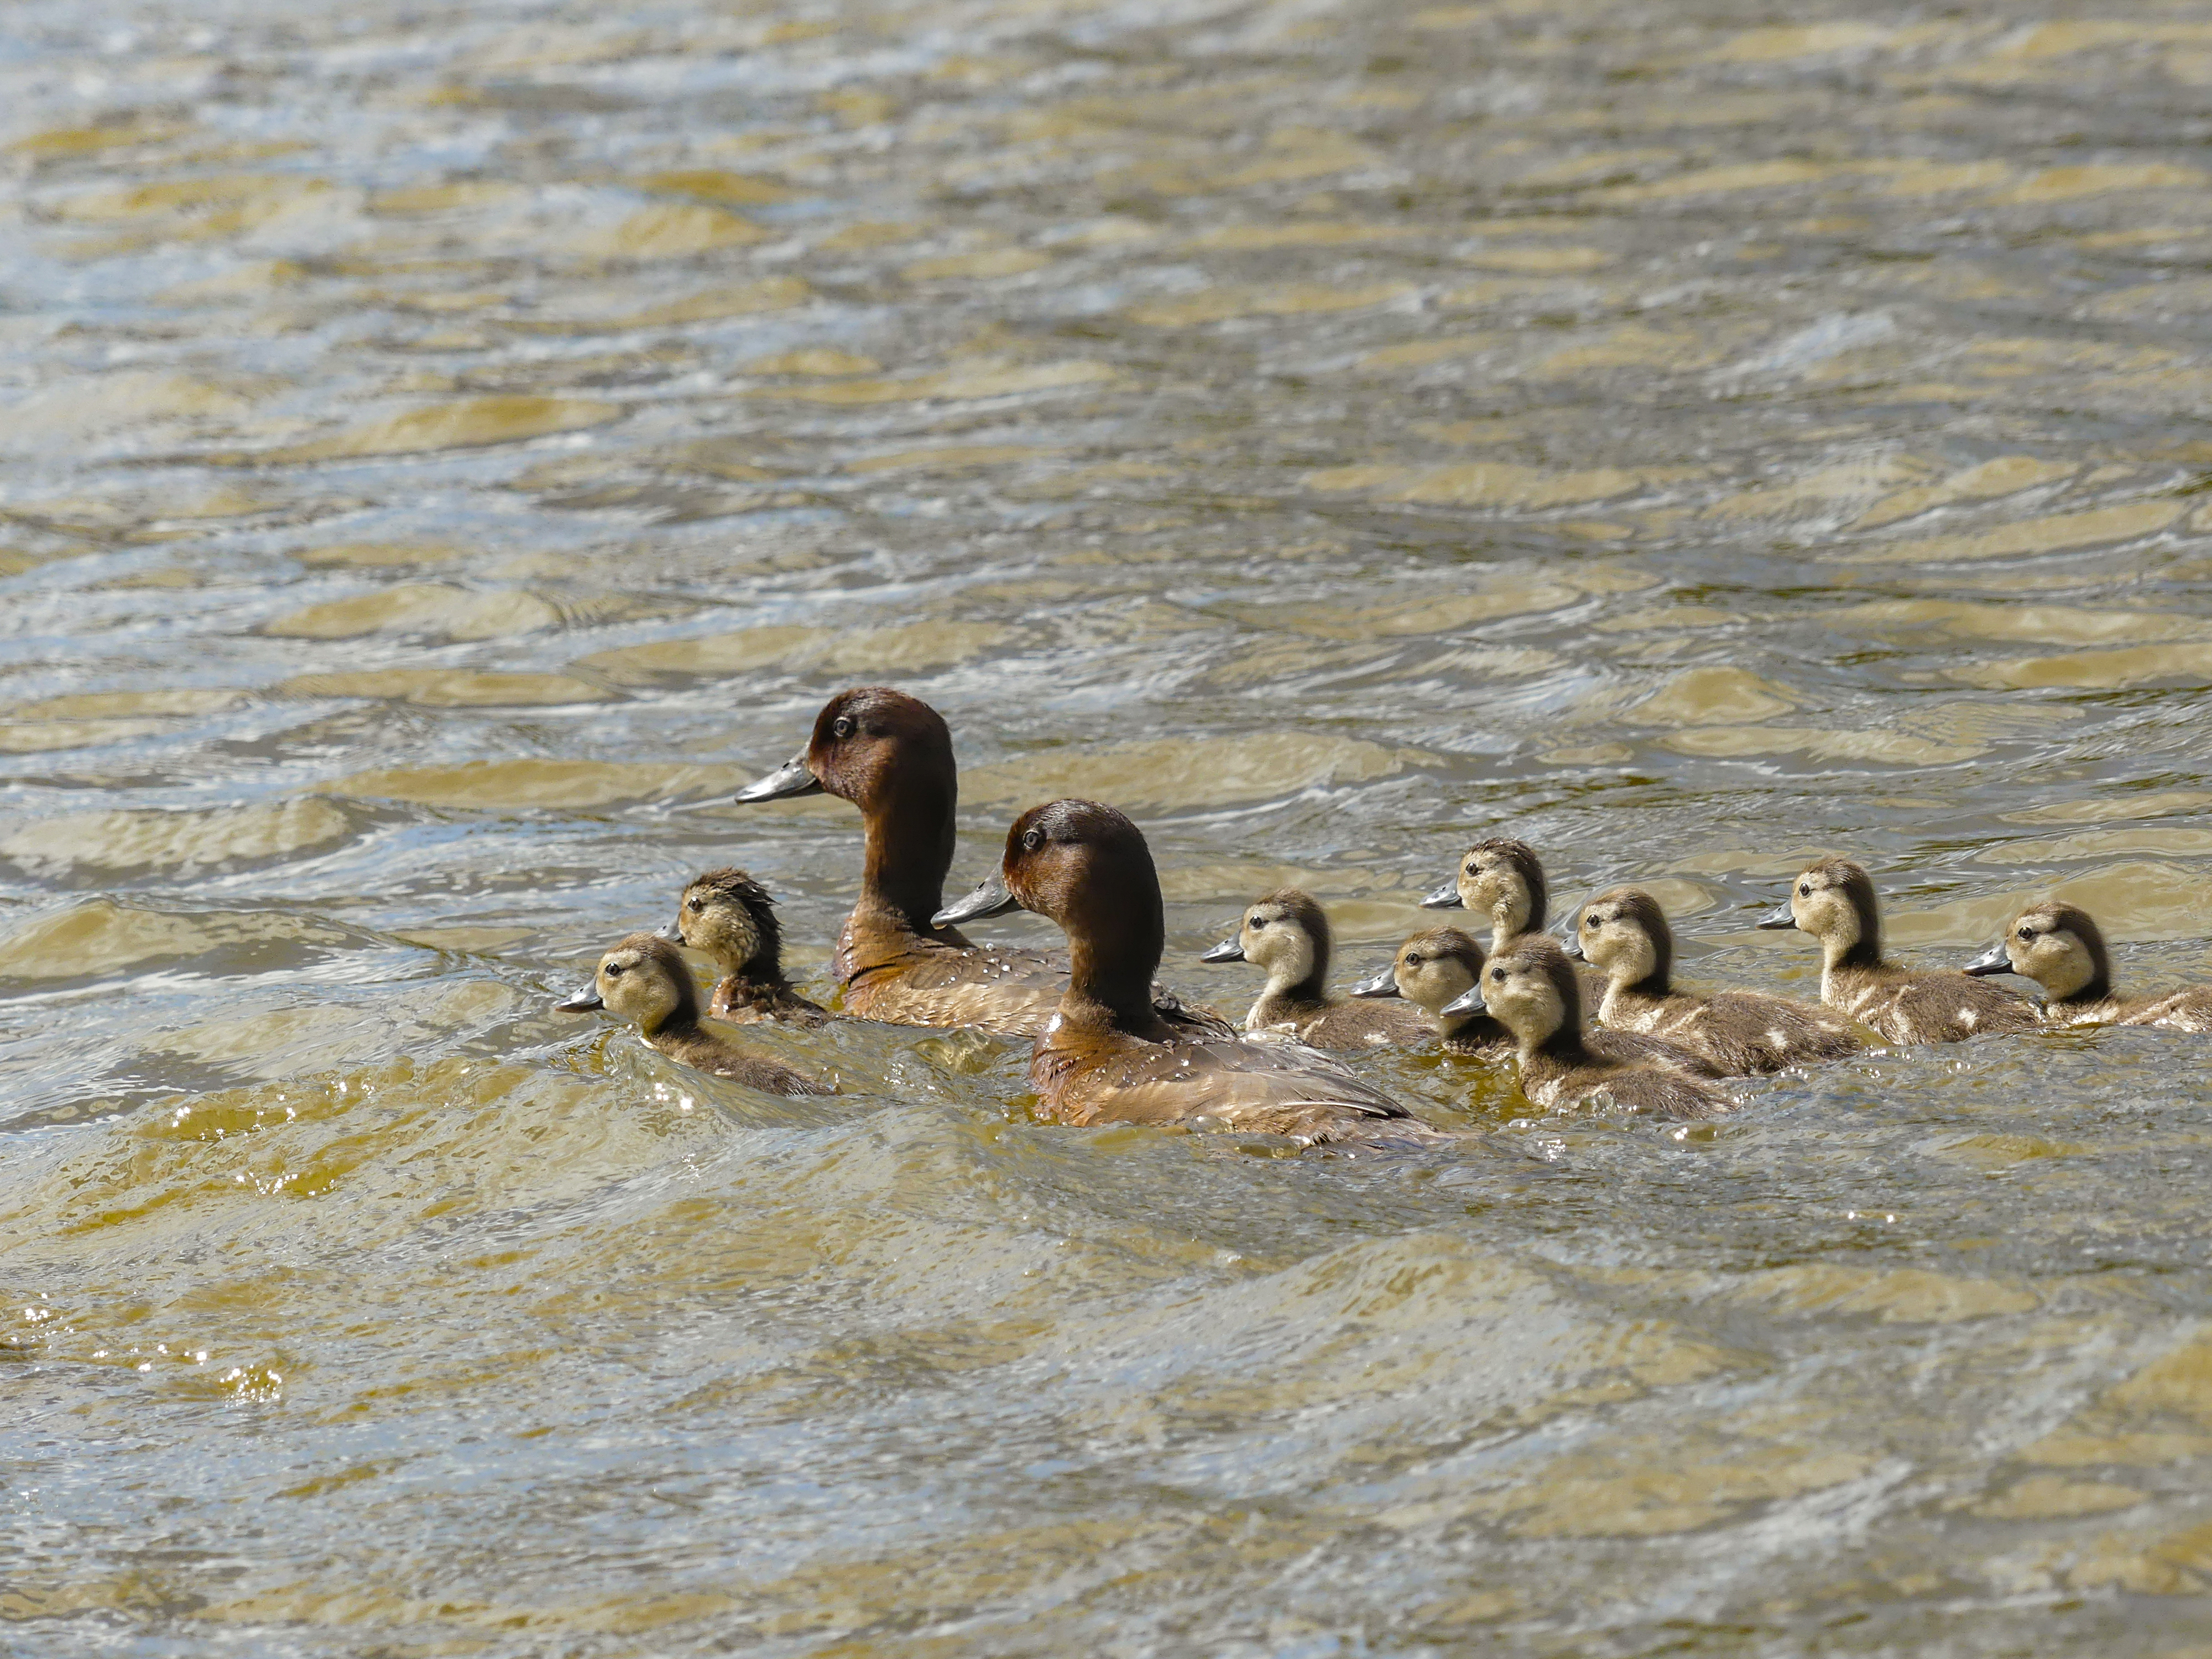 A total of 12 ducklings have been spotted on the lake in Madagascar (Durrell Madagascar/PA)